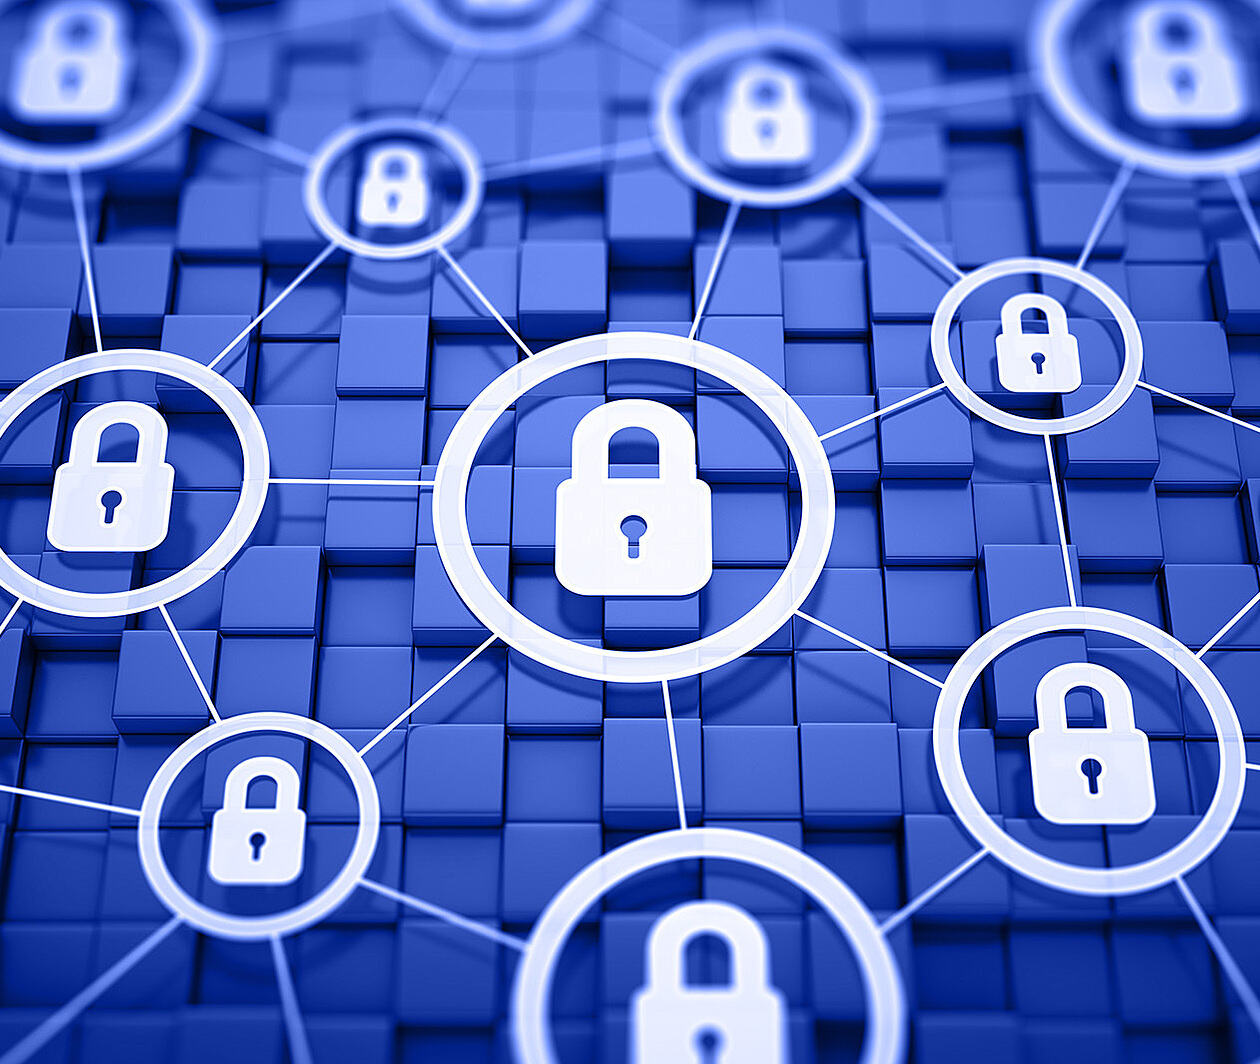 Network Defence Management: Security Architecture